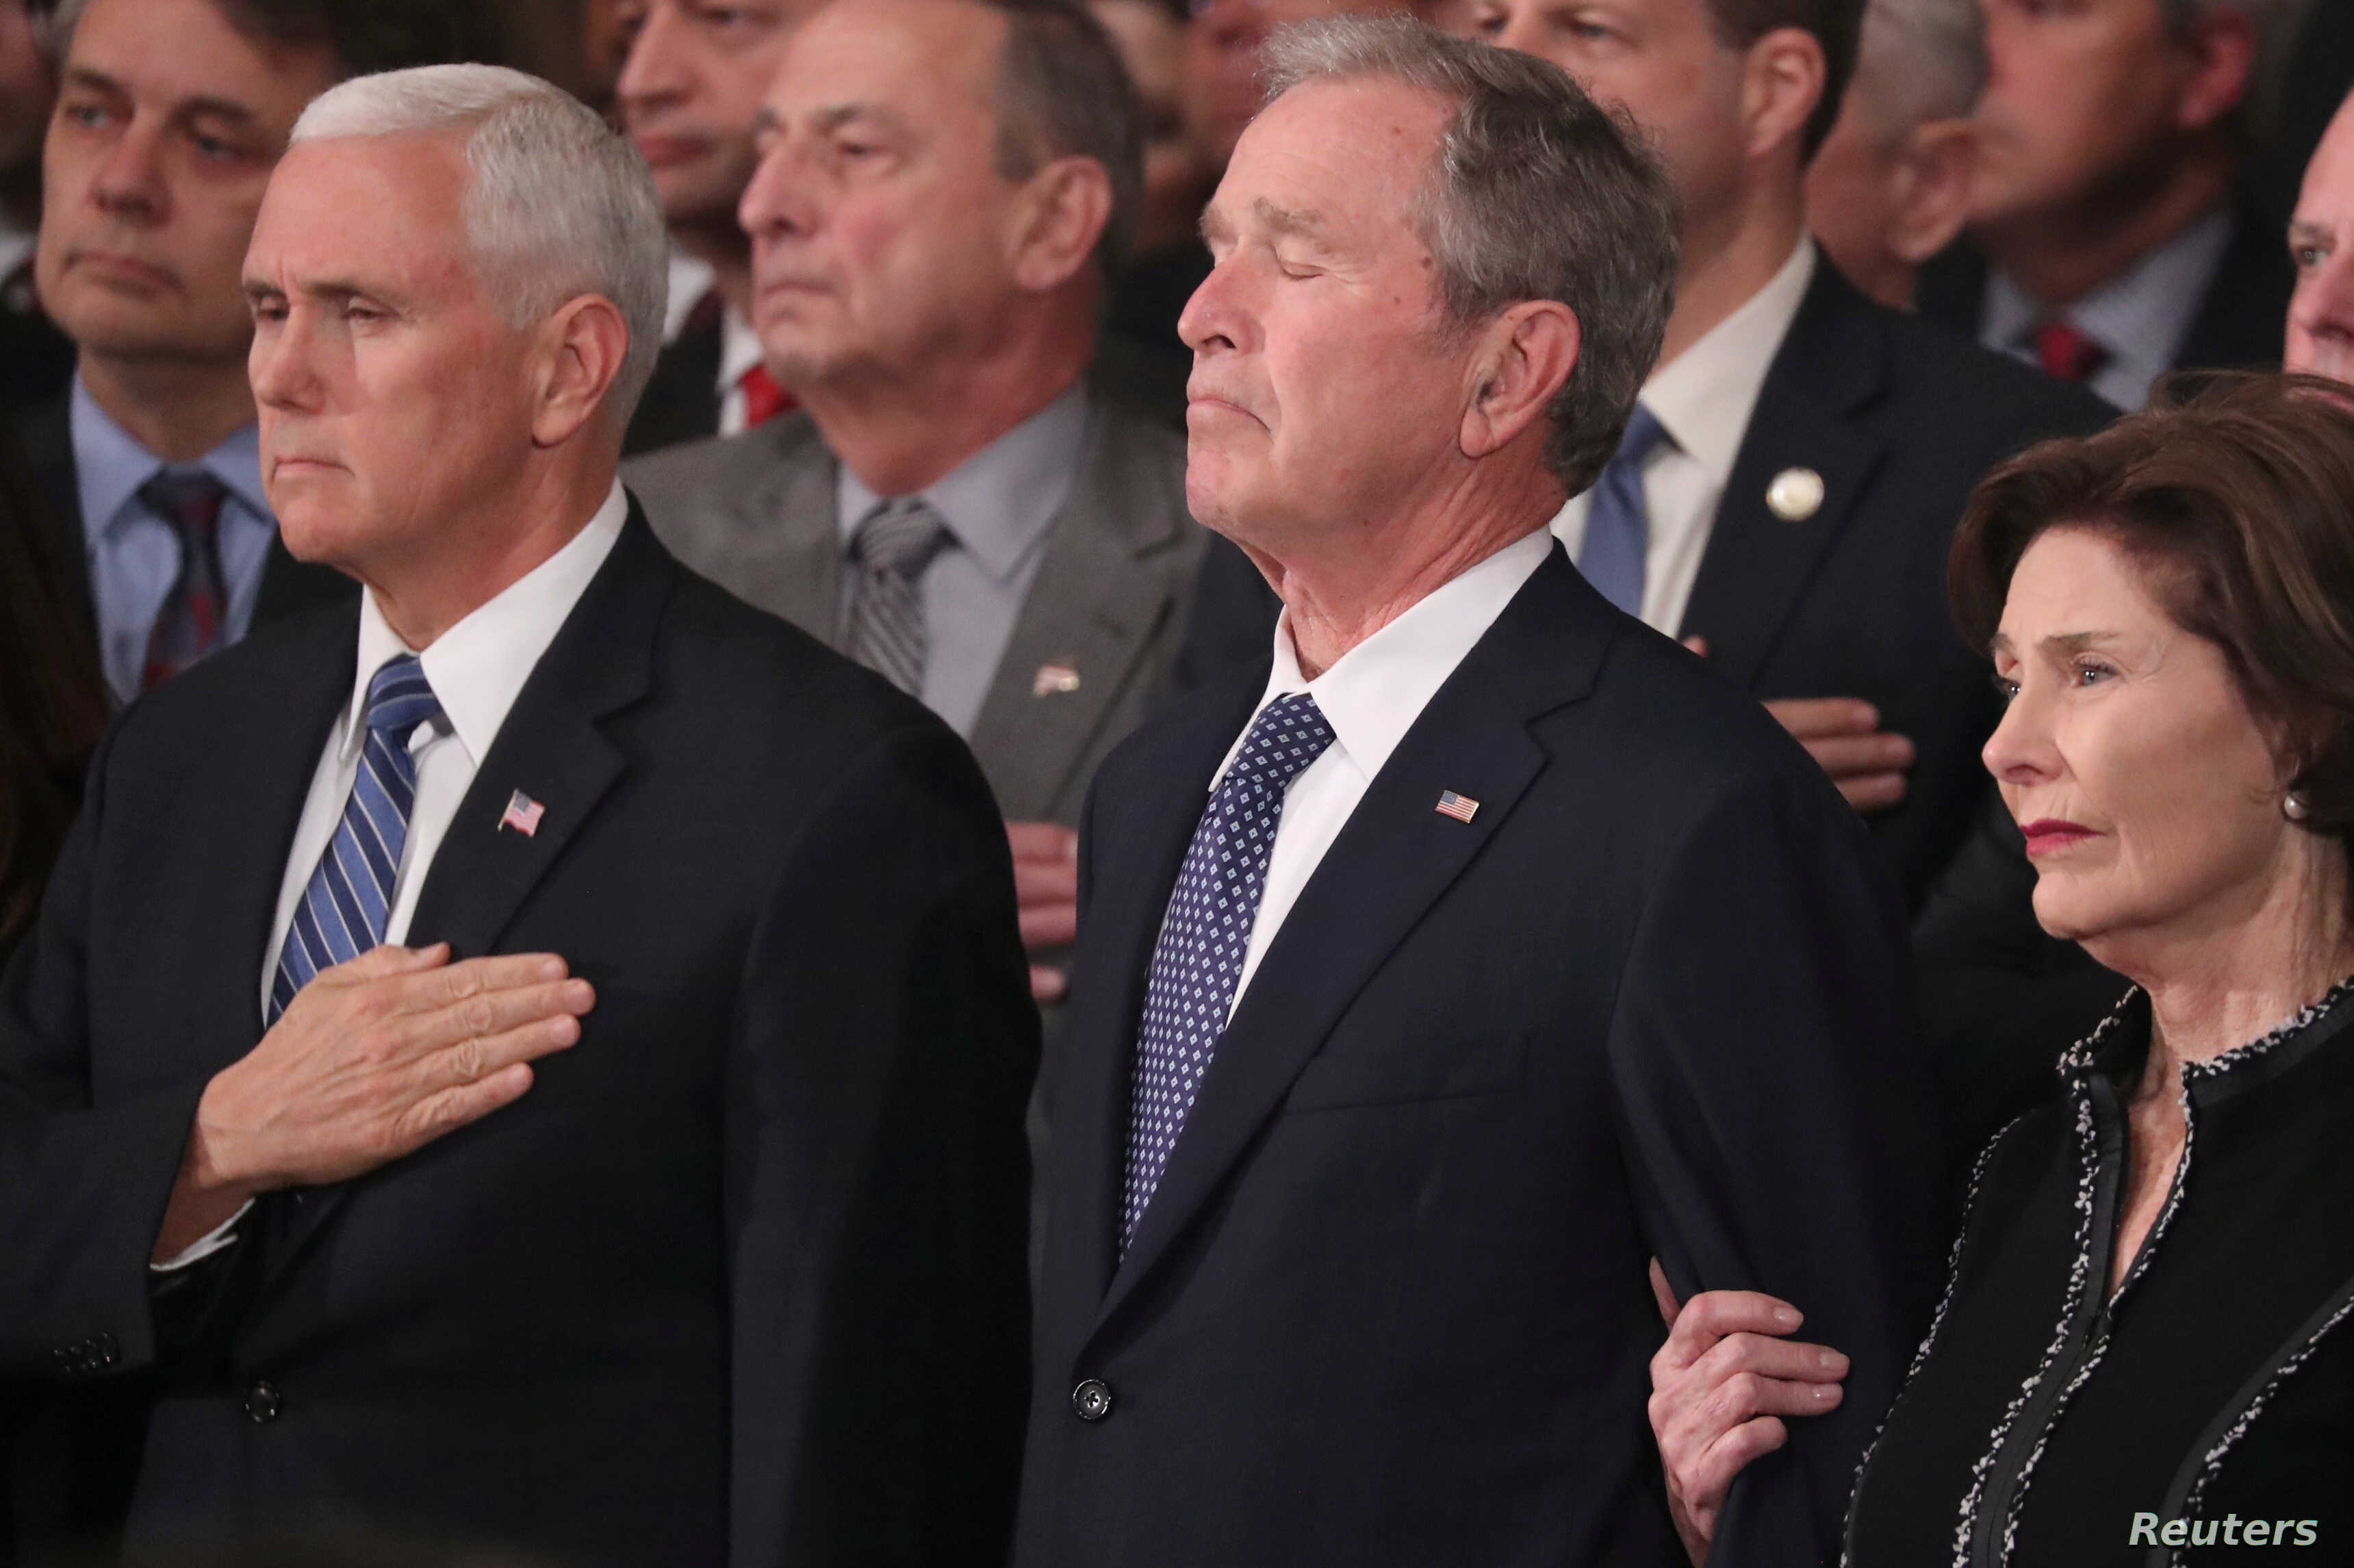 U.S. Vice President Mike Pence, former President George W. Bush and former first lady Laura Bush watch as the casket of former President George H.W. Bush arrives to lie in state in the U.S. Capitol Rotunda in Washington, U.S., Dec. 3, 2018.